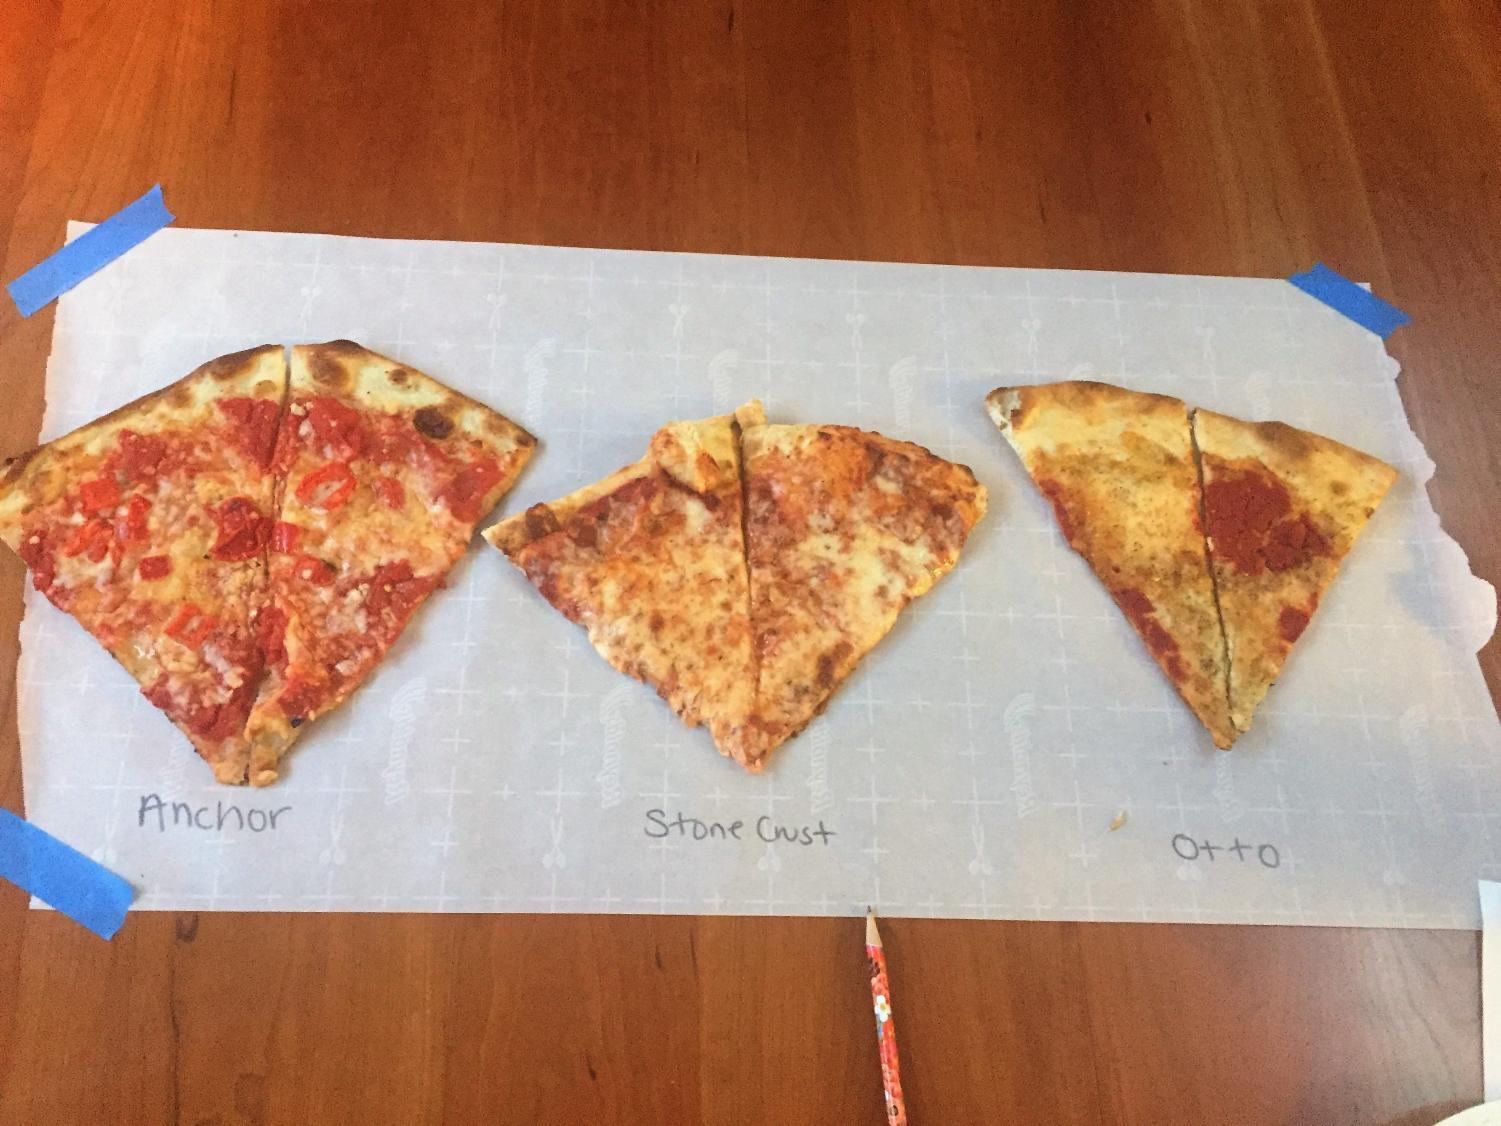 Anchor, Stone Crust, and Otto slices vary in shape, size, and taste.